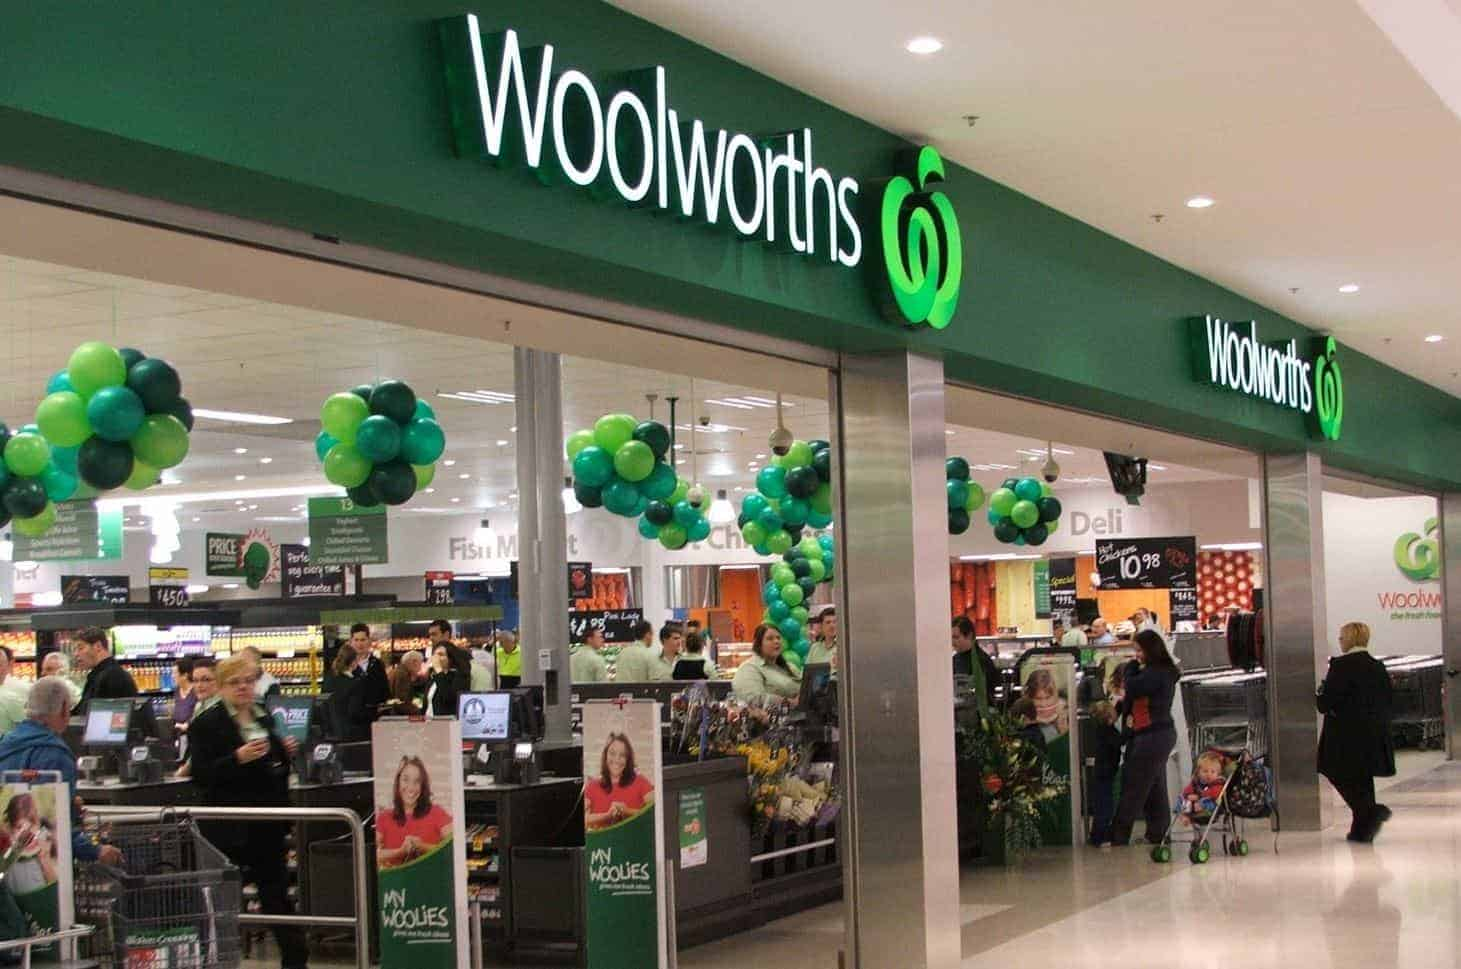 How To Invest In Shares - Woolworths